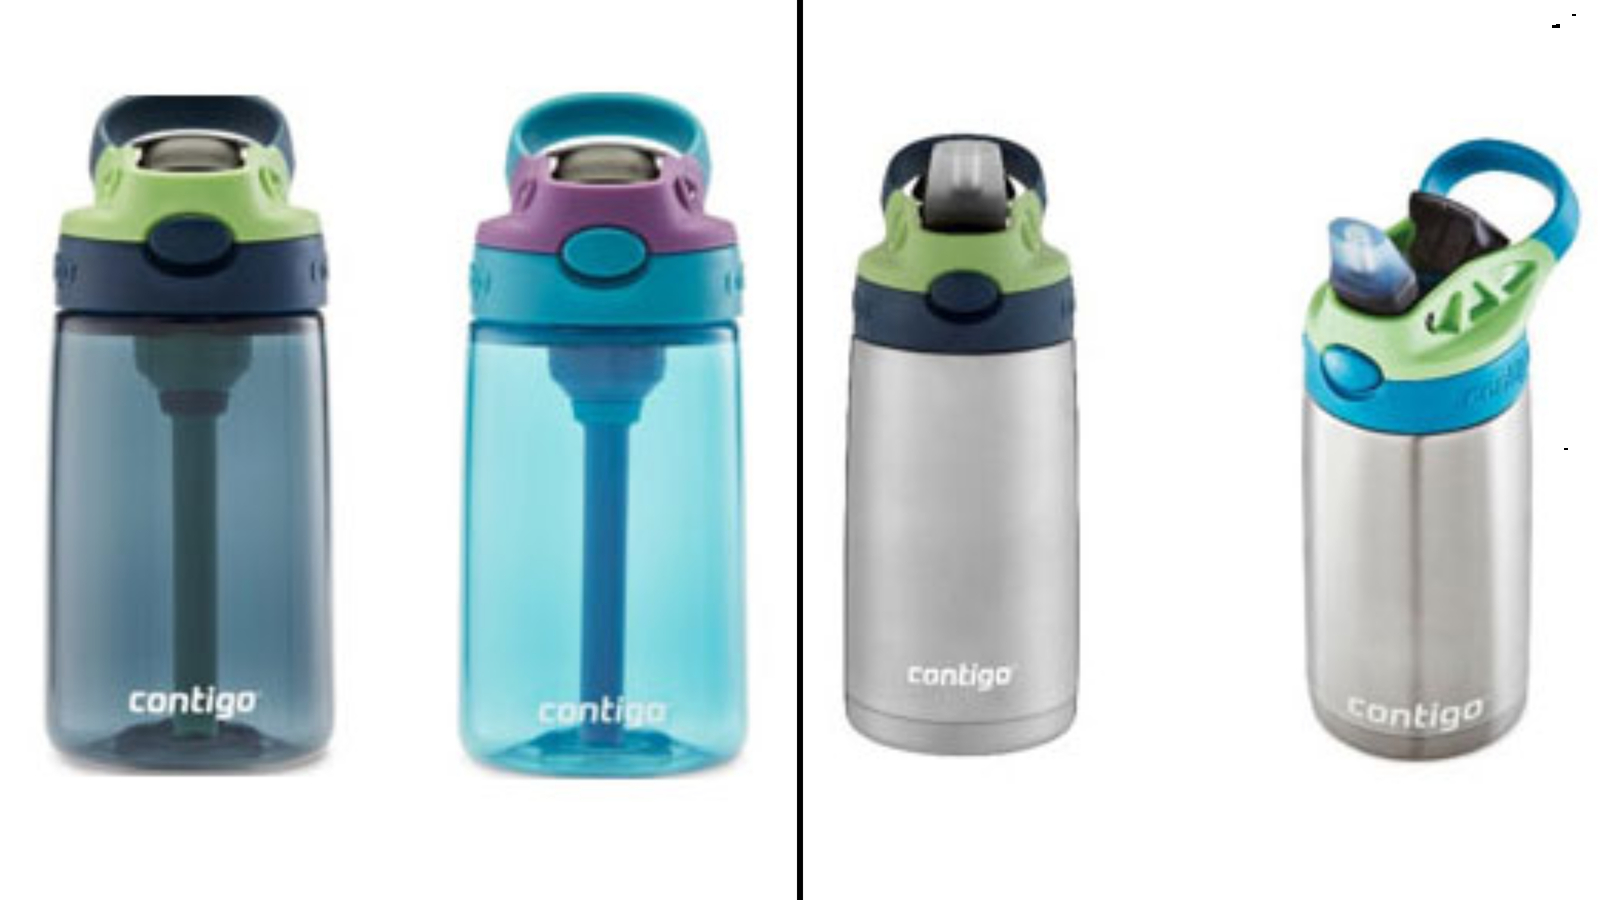 Contigo recalls nearly 6 million of its kids water bottles due to a choking hazard. Again.